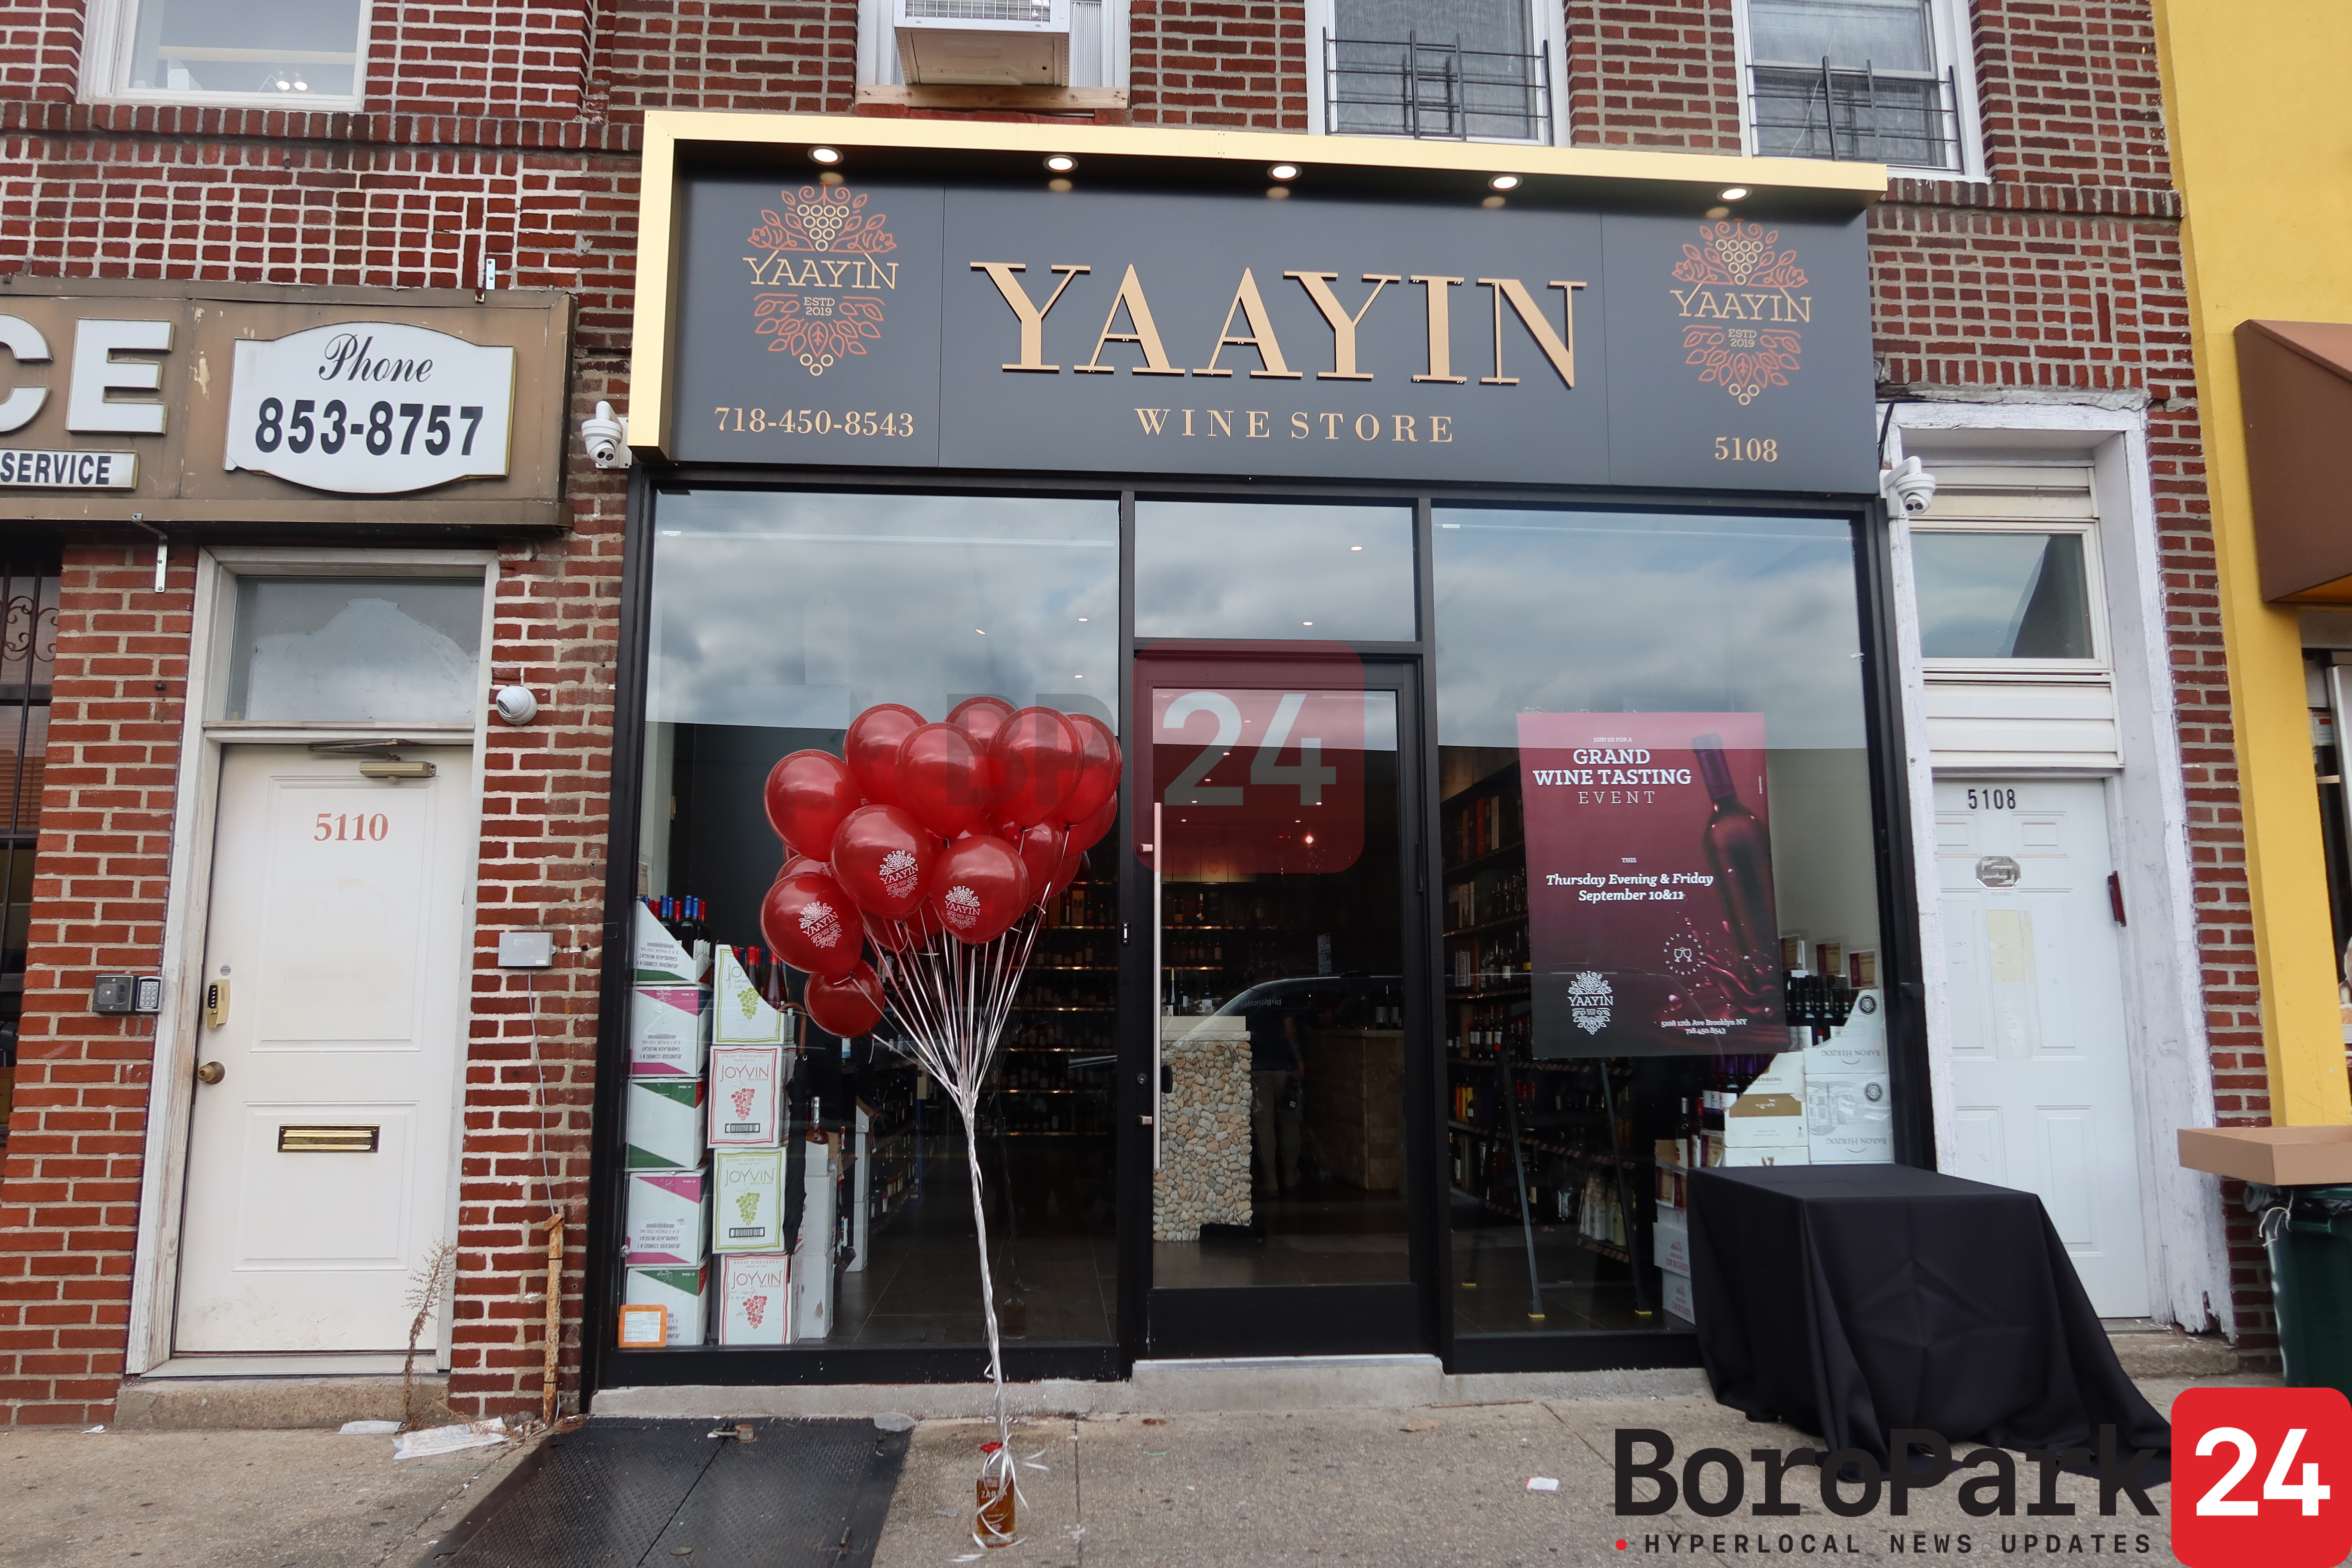 Photos: Grand Wine Tasting event at Yaayin Wine Store.